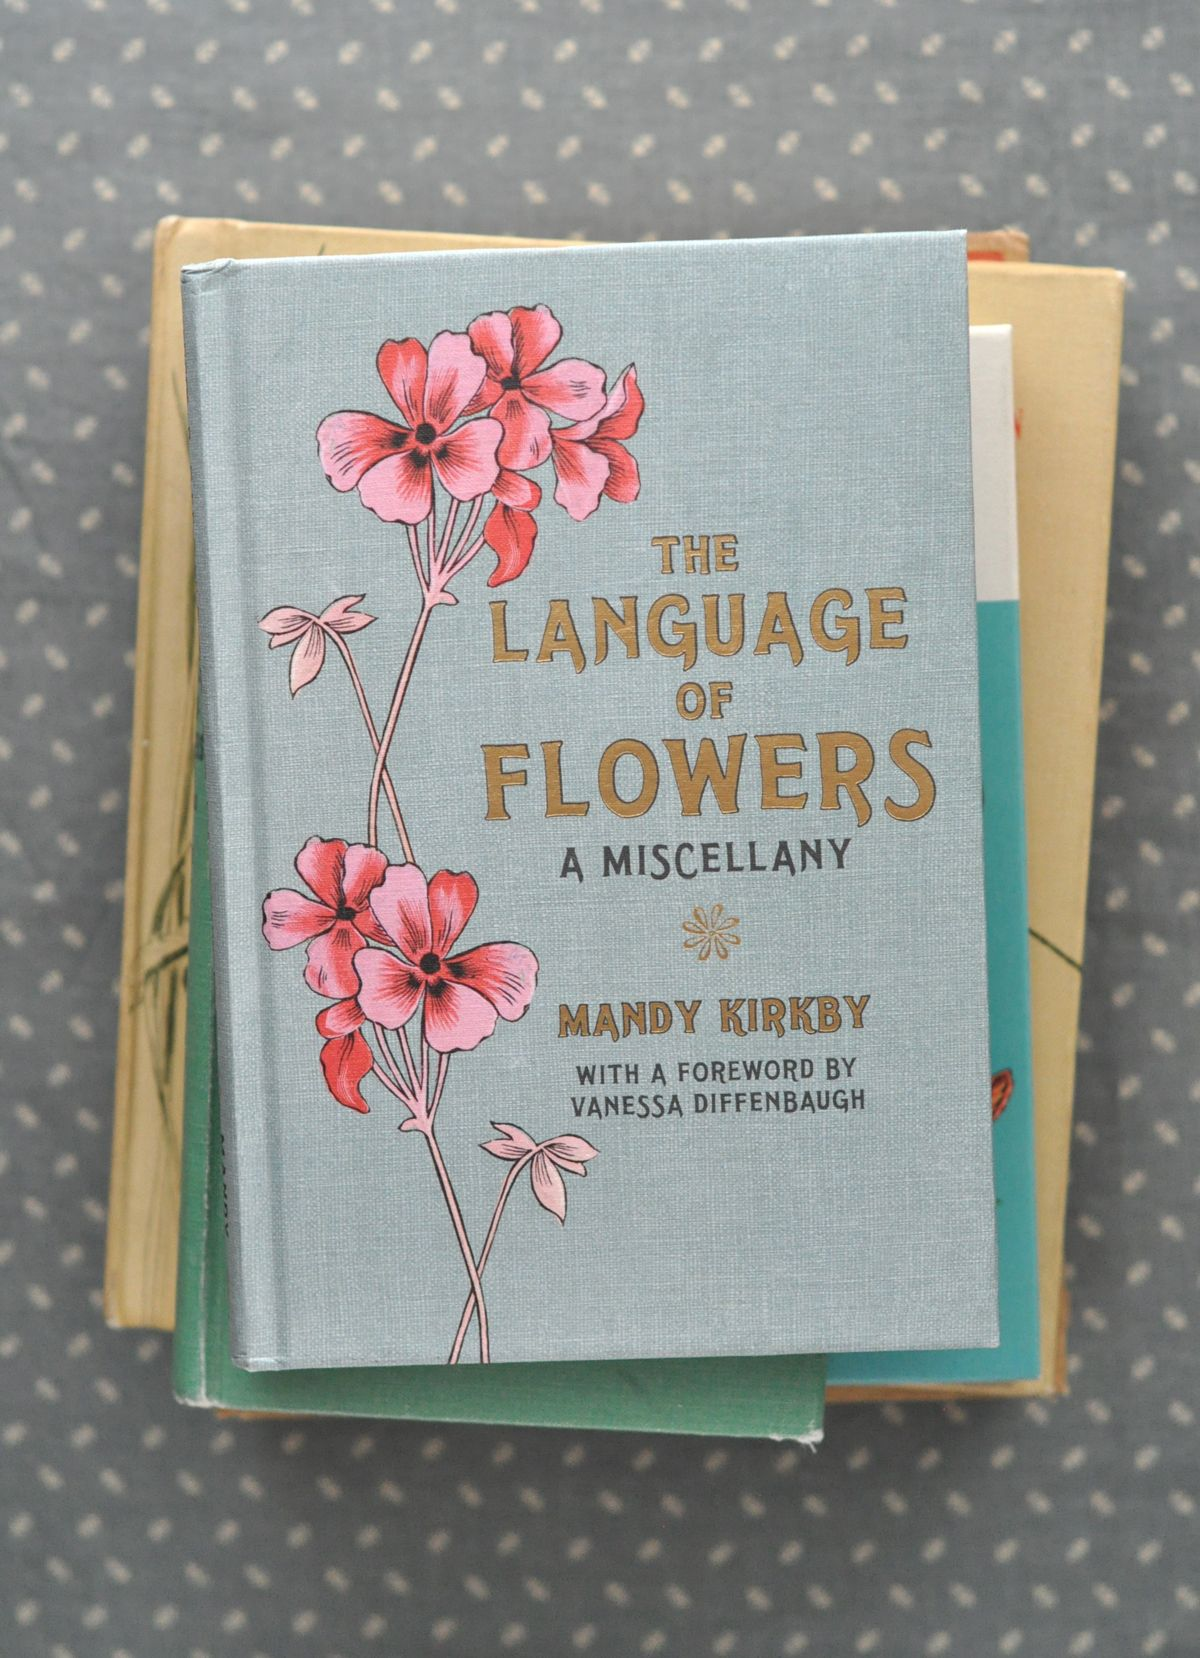 the language of flowers, a miscellany / mandy kirkby